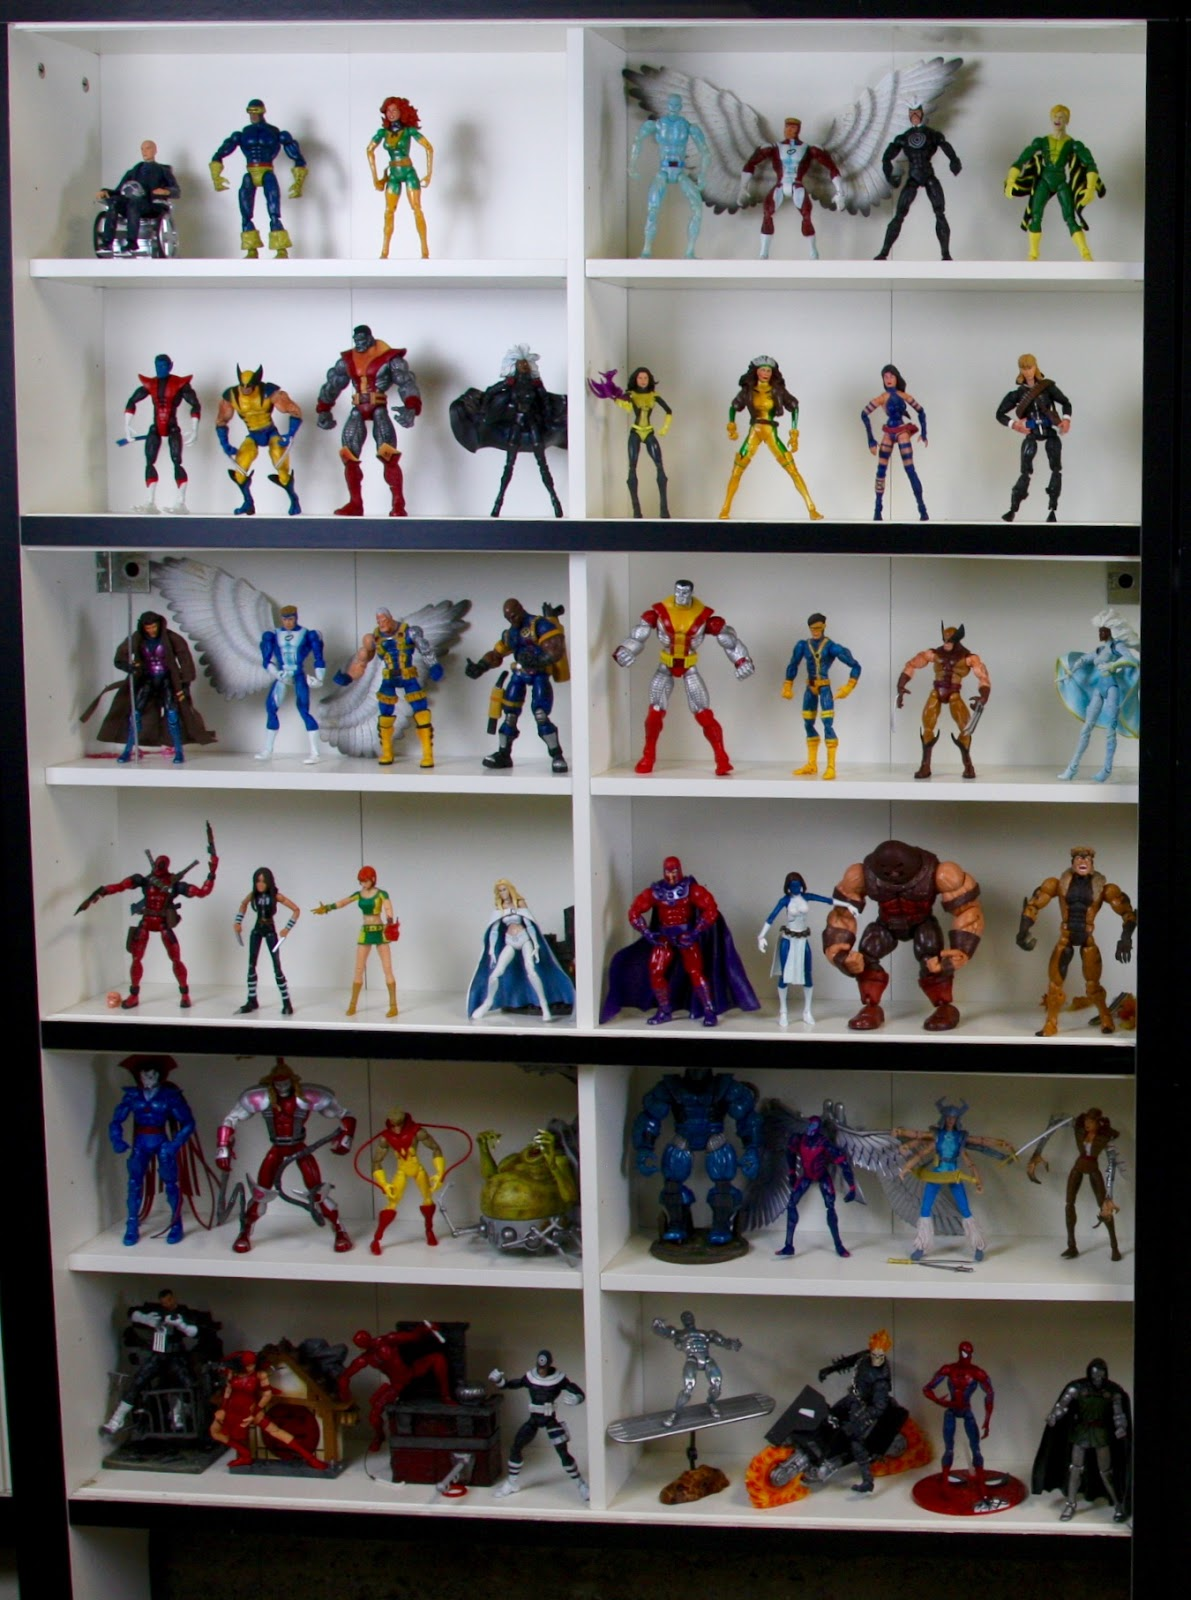 Ikea Dromme DVD/CD Storage Cabinet (2 Quantity)   Assembly Instructions    Hammer   Tape Measure   A Boat Load Of Marvel Legends Action Figures